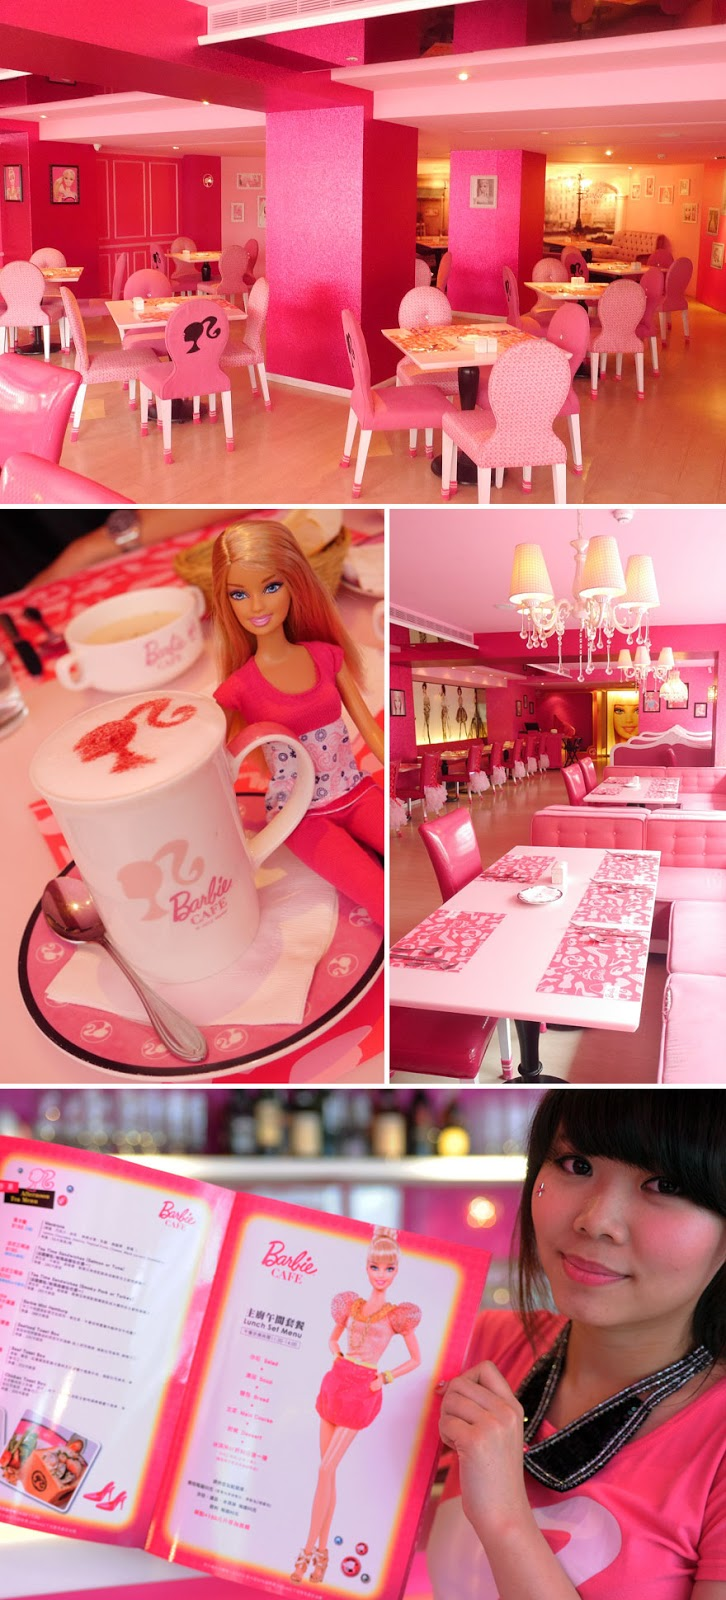 35 Of The World's Most Amazing Restaurants To Eat In Before You Die - Barbie Cafe In Taipei, Taiwan